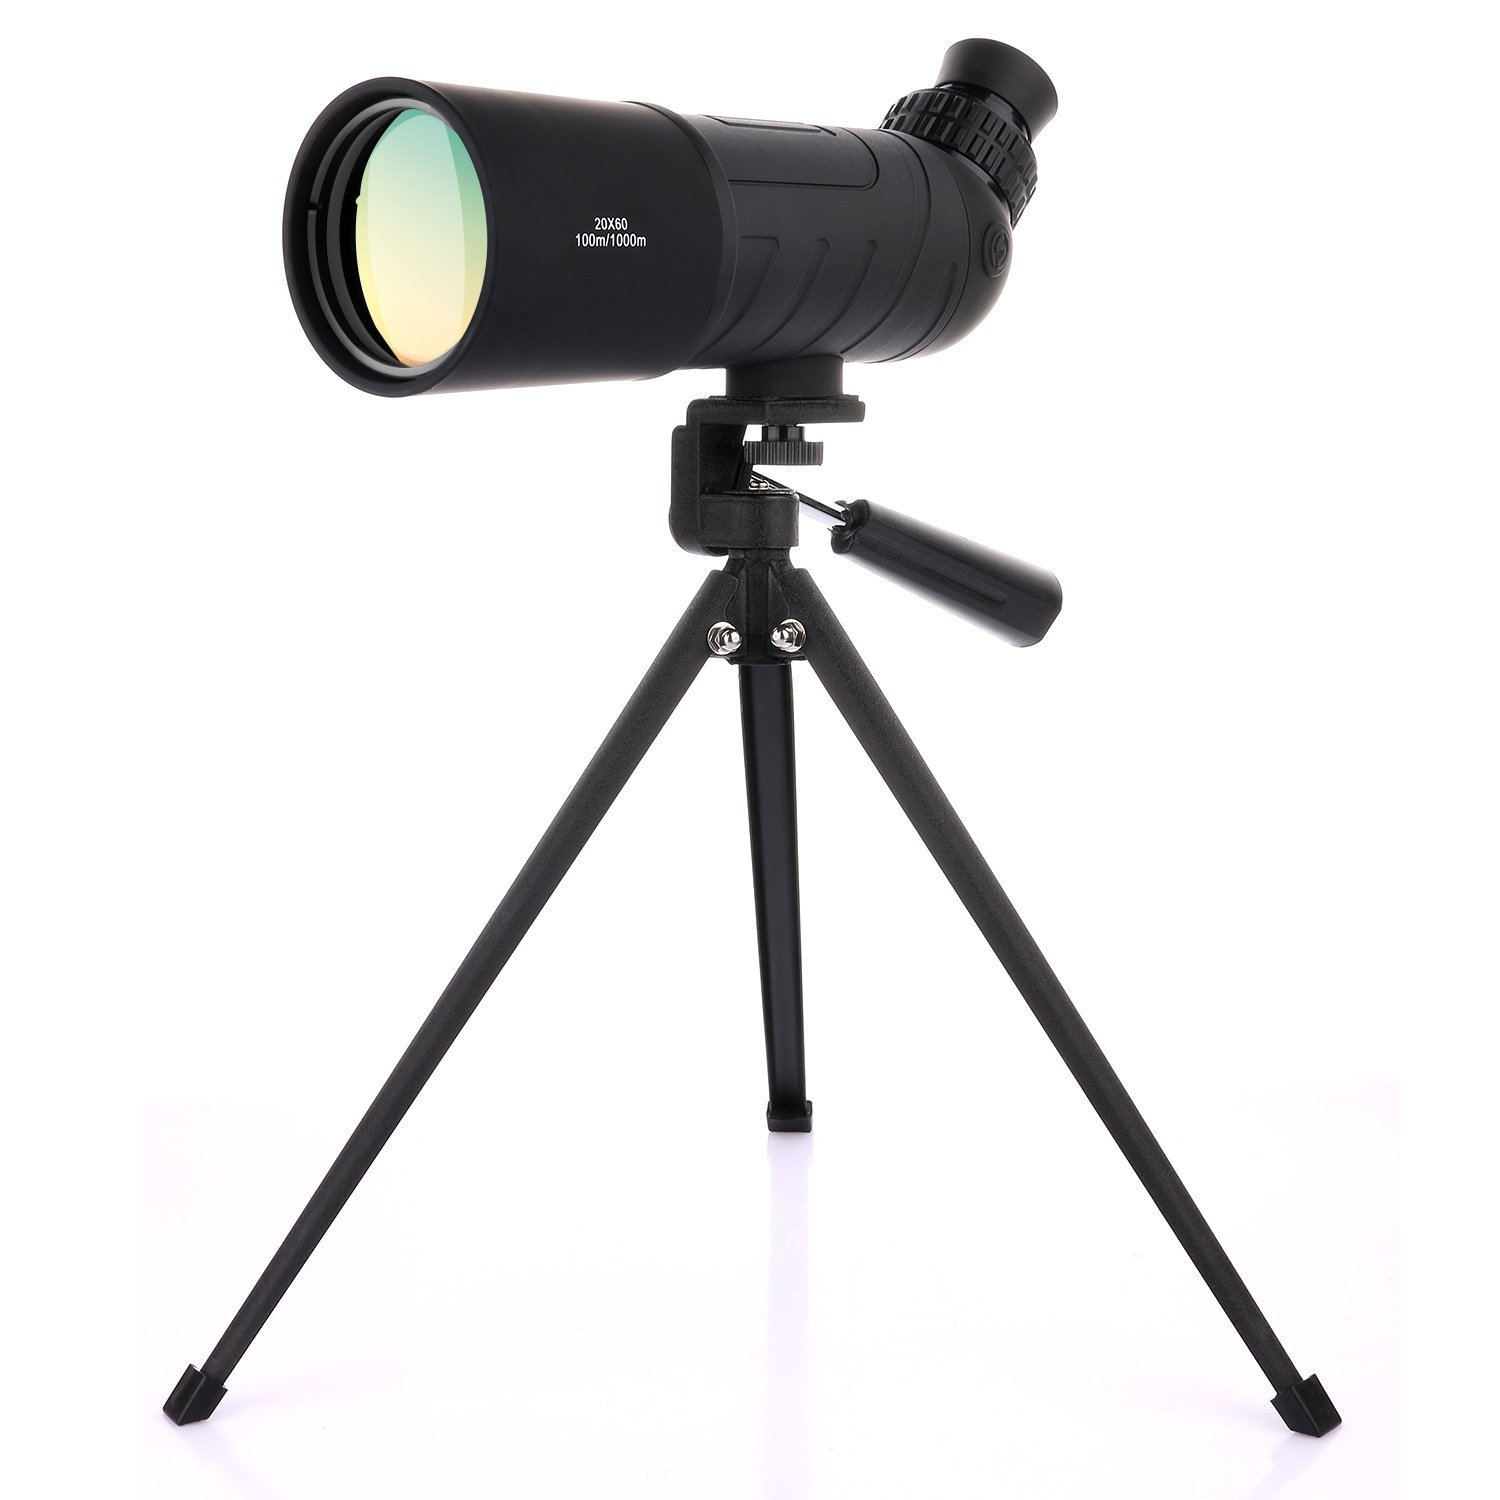 OXA 20x60 Angled Waterproof Spotting Scope with Tripod for Birdwatching Portable HD Monocular Telescope High Powered Scope for Target Shooting Archery Outdoor Activities by OXA